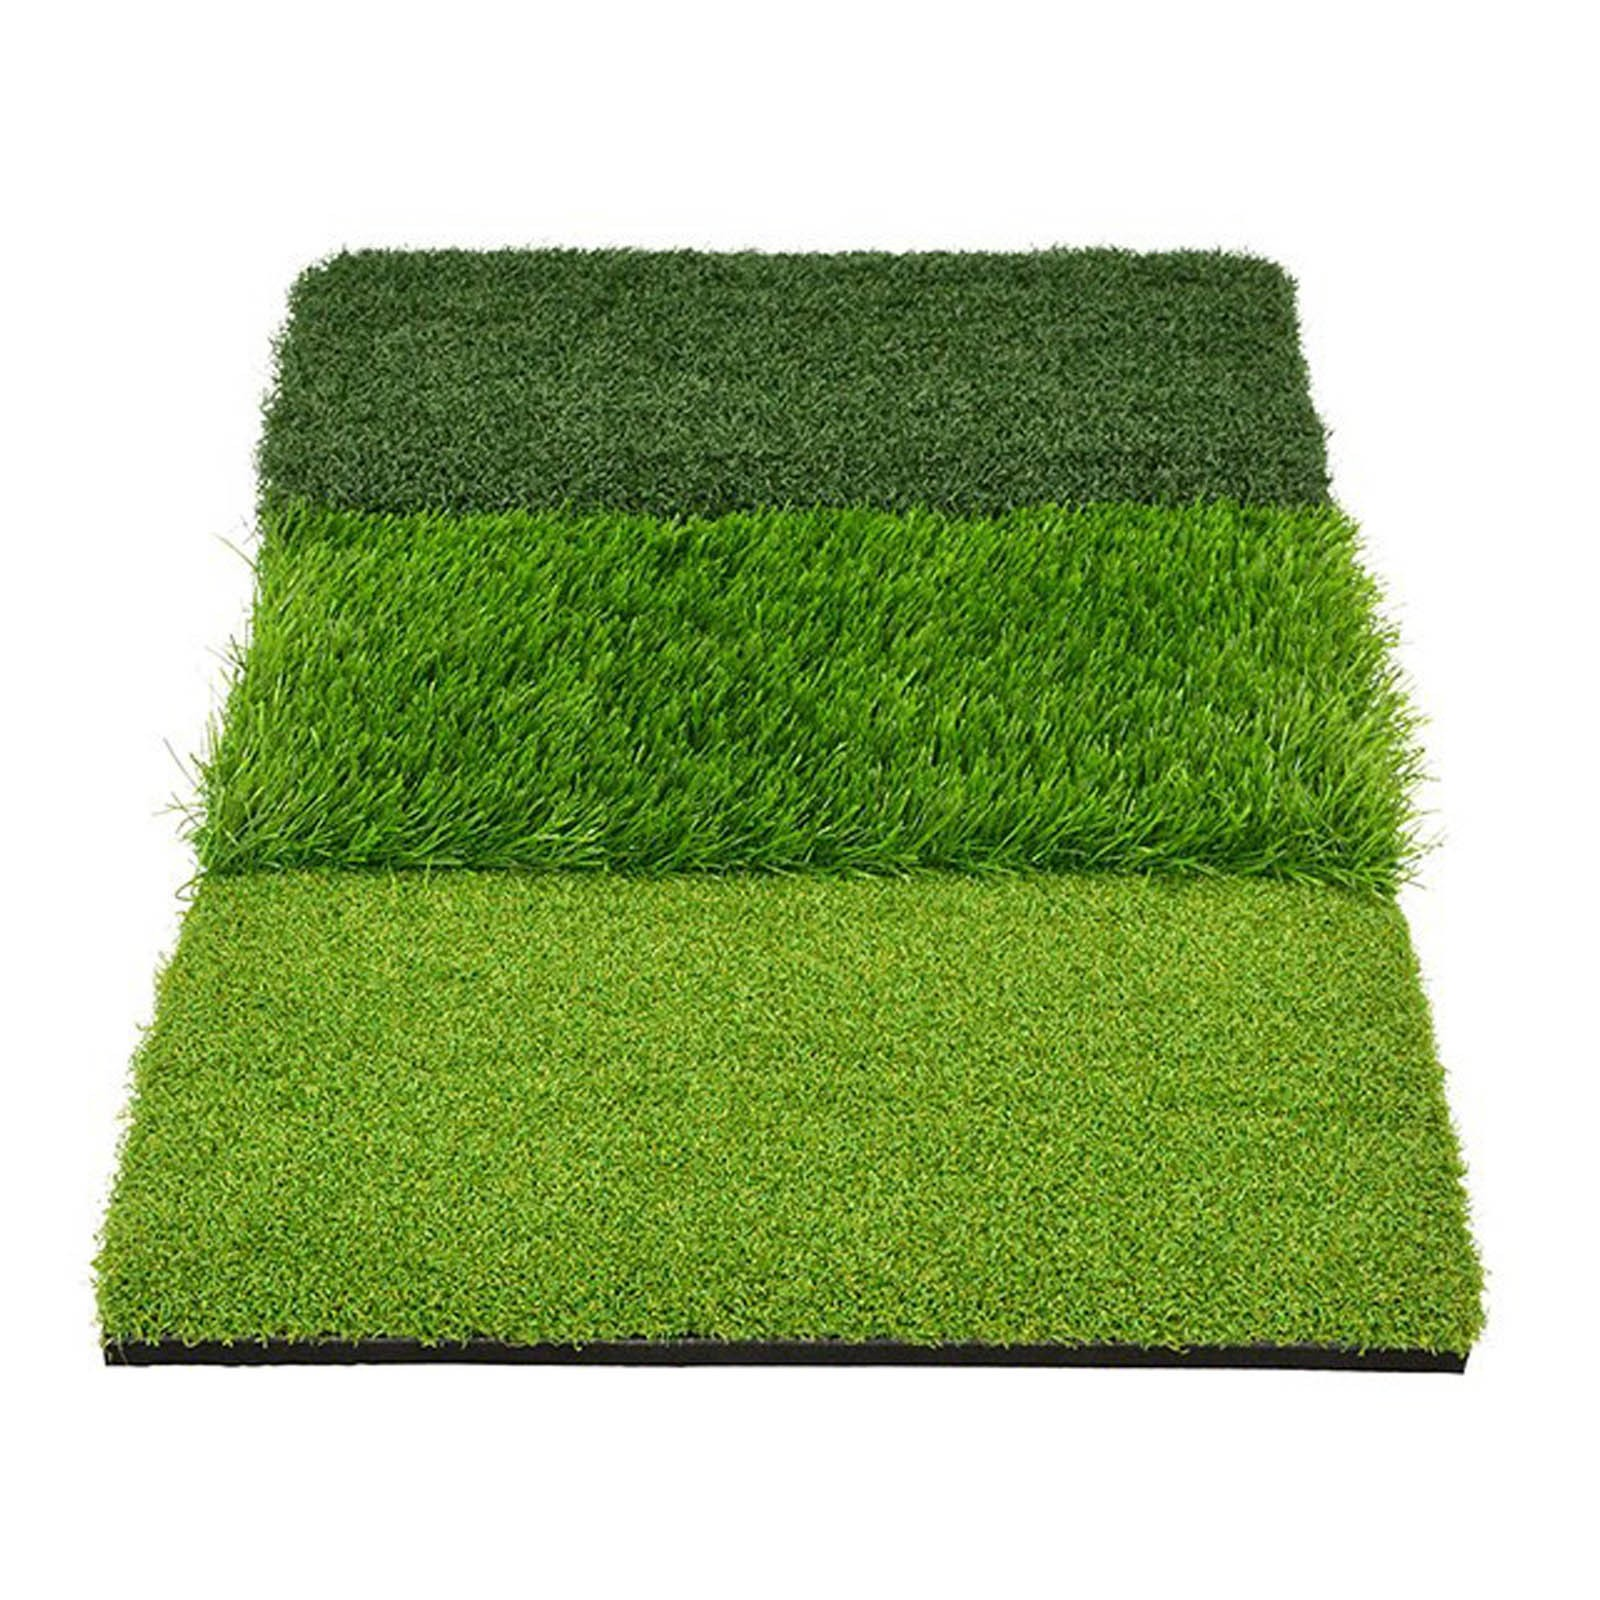 Longridge 3 Turf Practice Mat